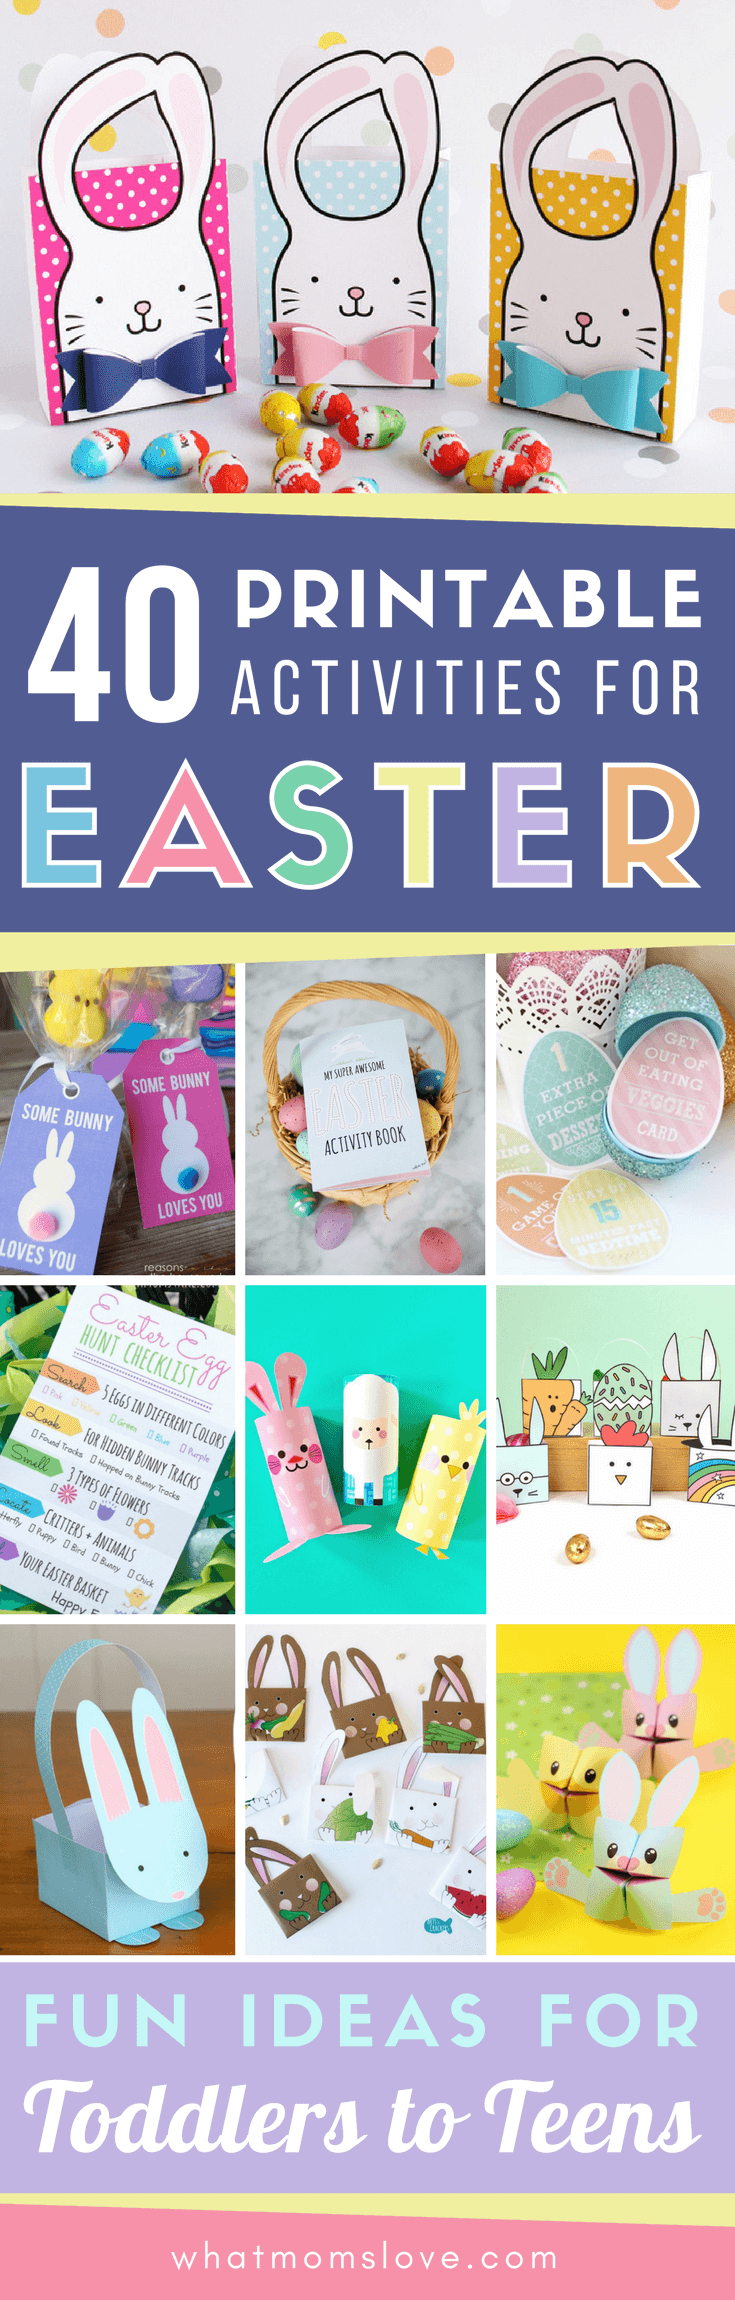 Printable Easter Activities for